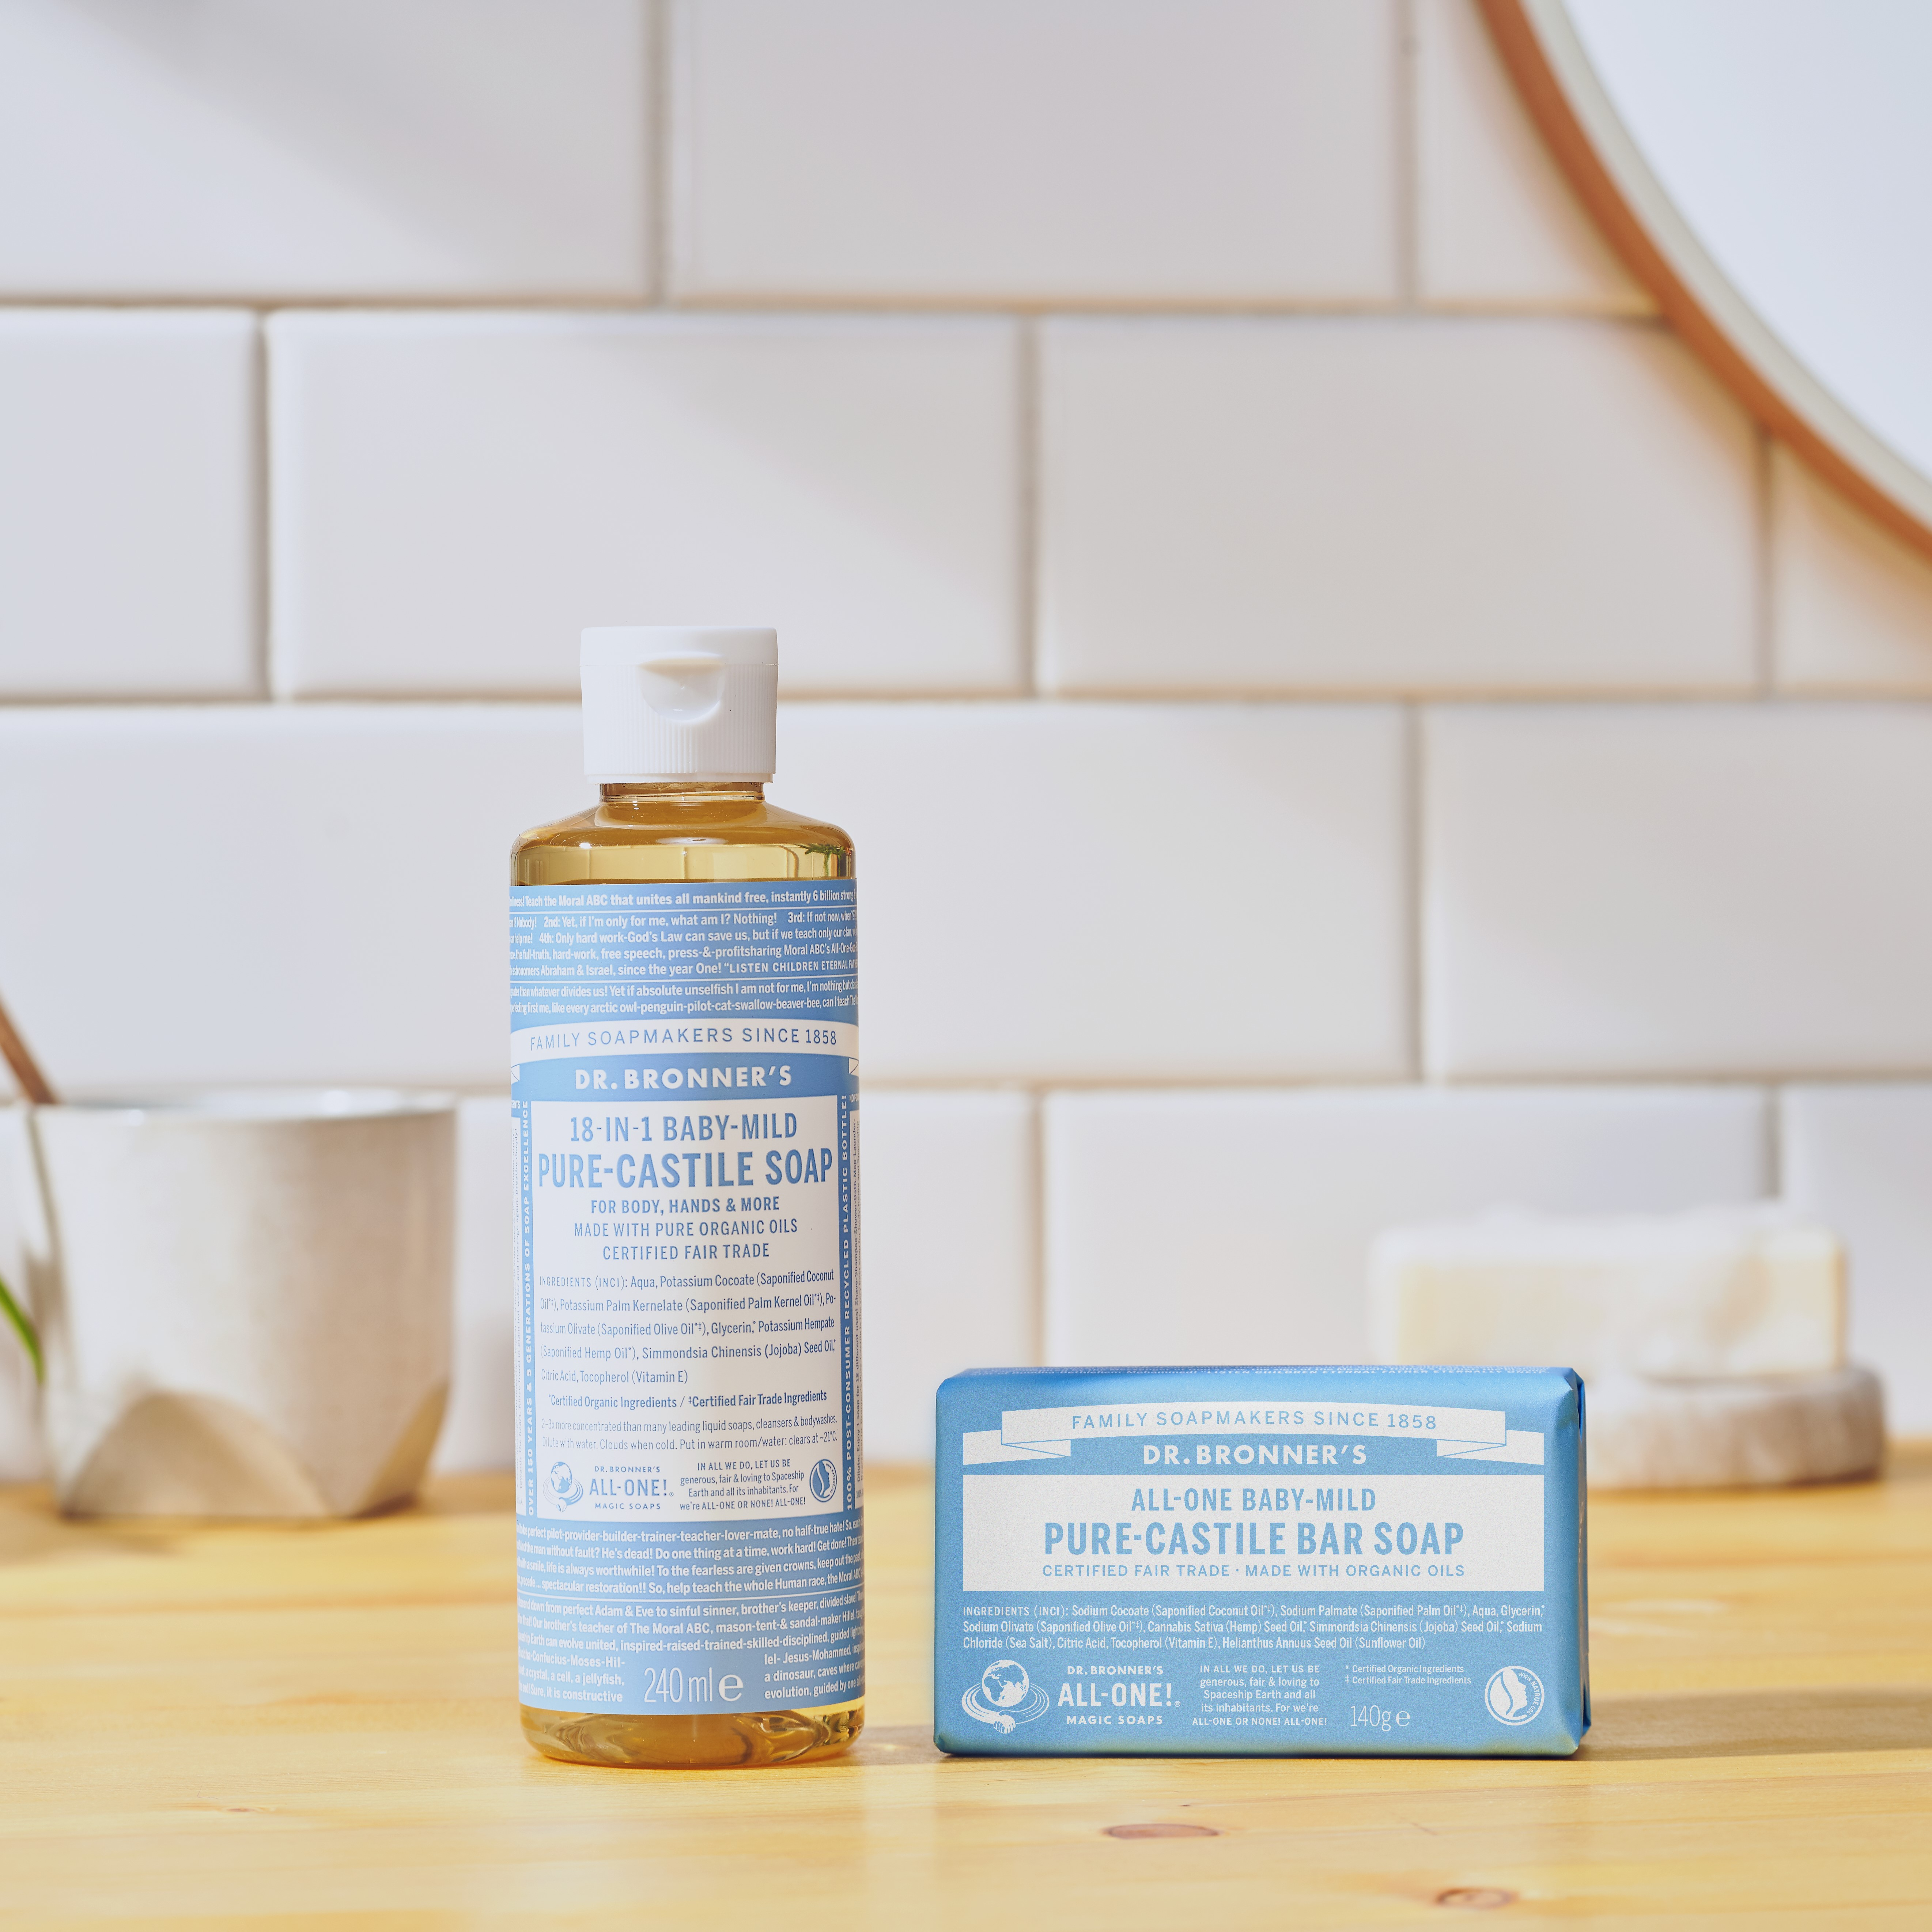 https://www.drbronner.jp/column/life-style/life-style05/